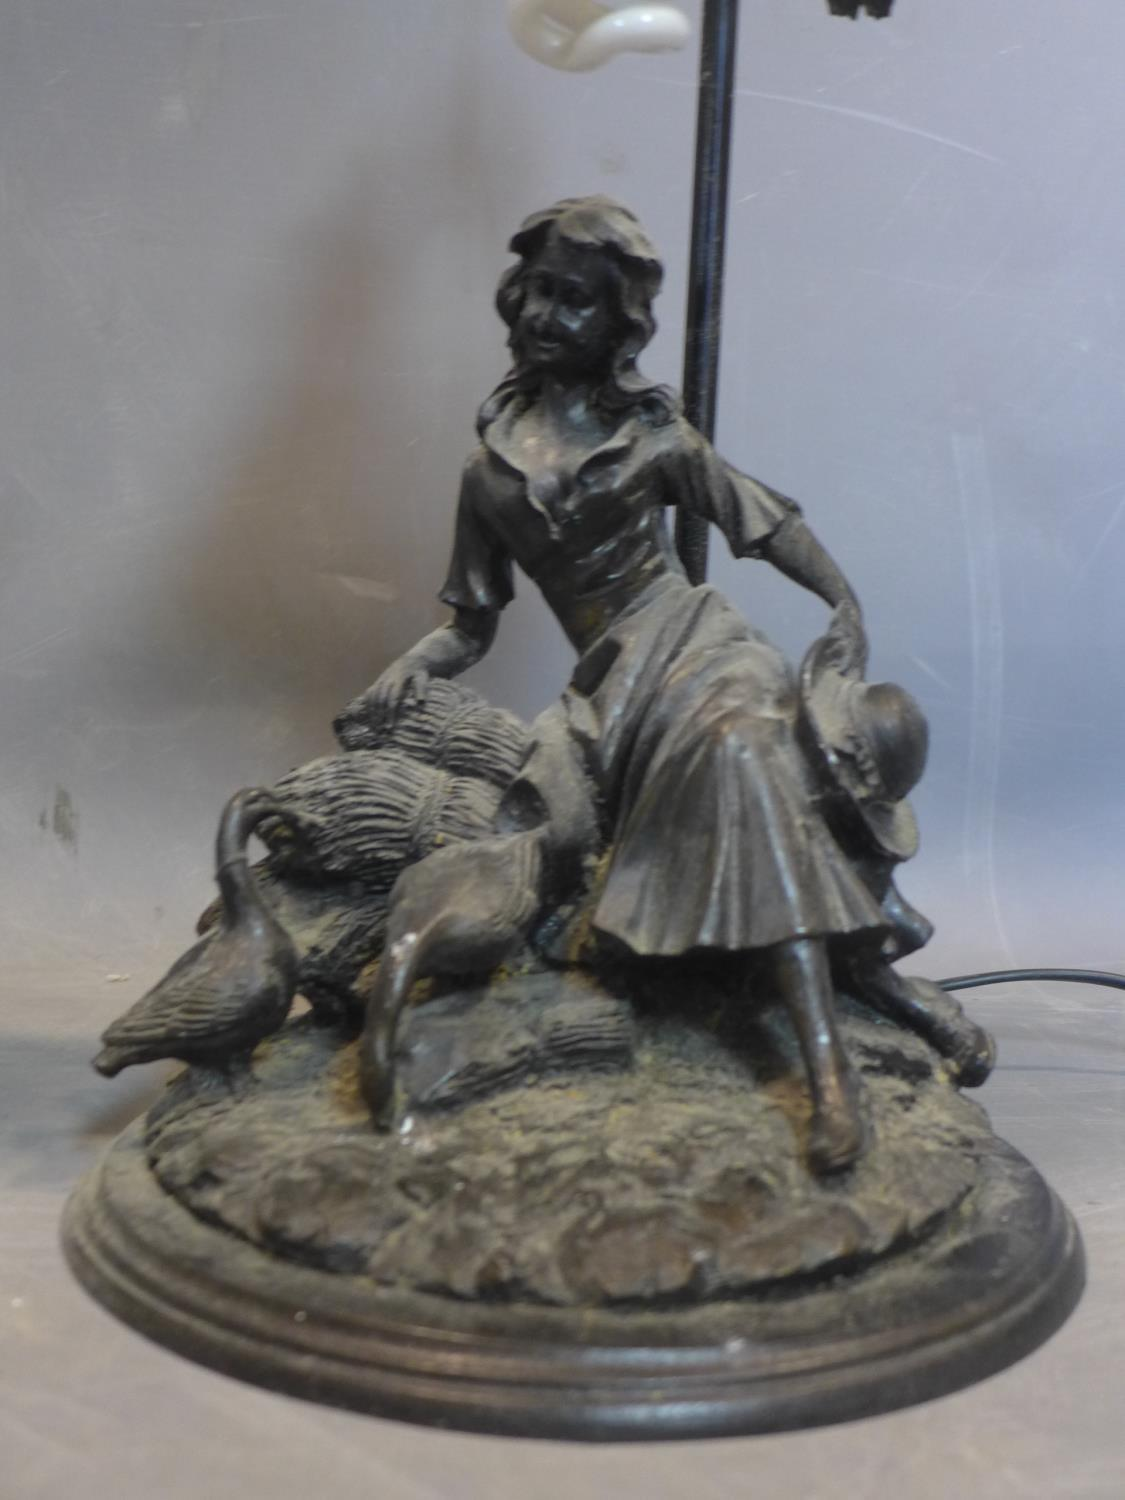 Lot 234 - A 20th century moulded lamp in the form of a lady sitting on hay with some geese together with a